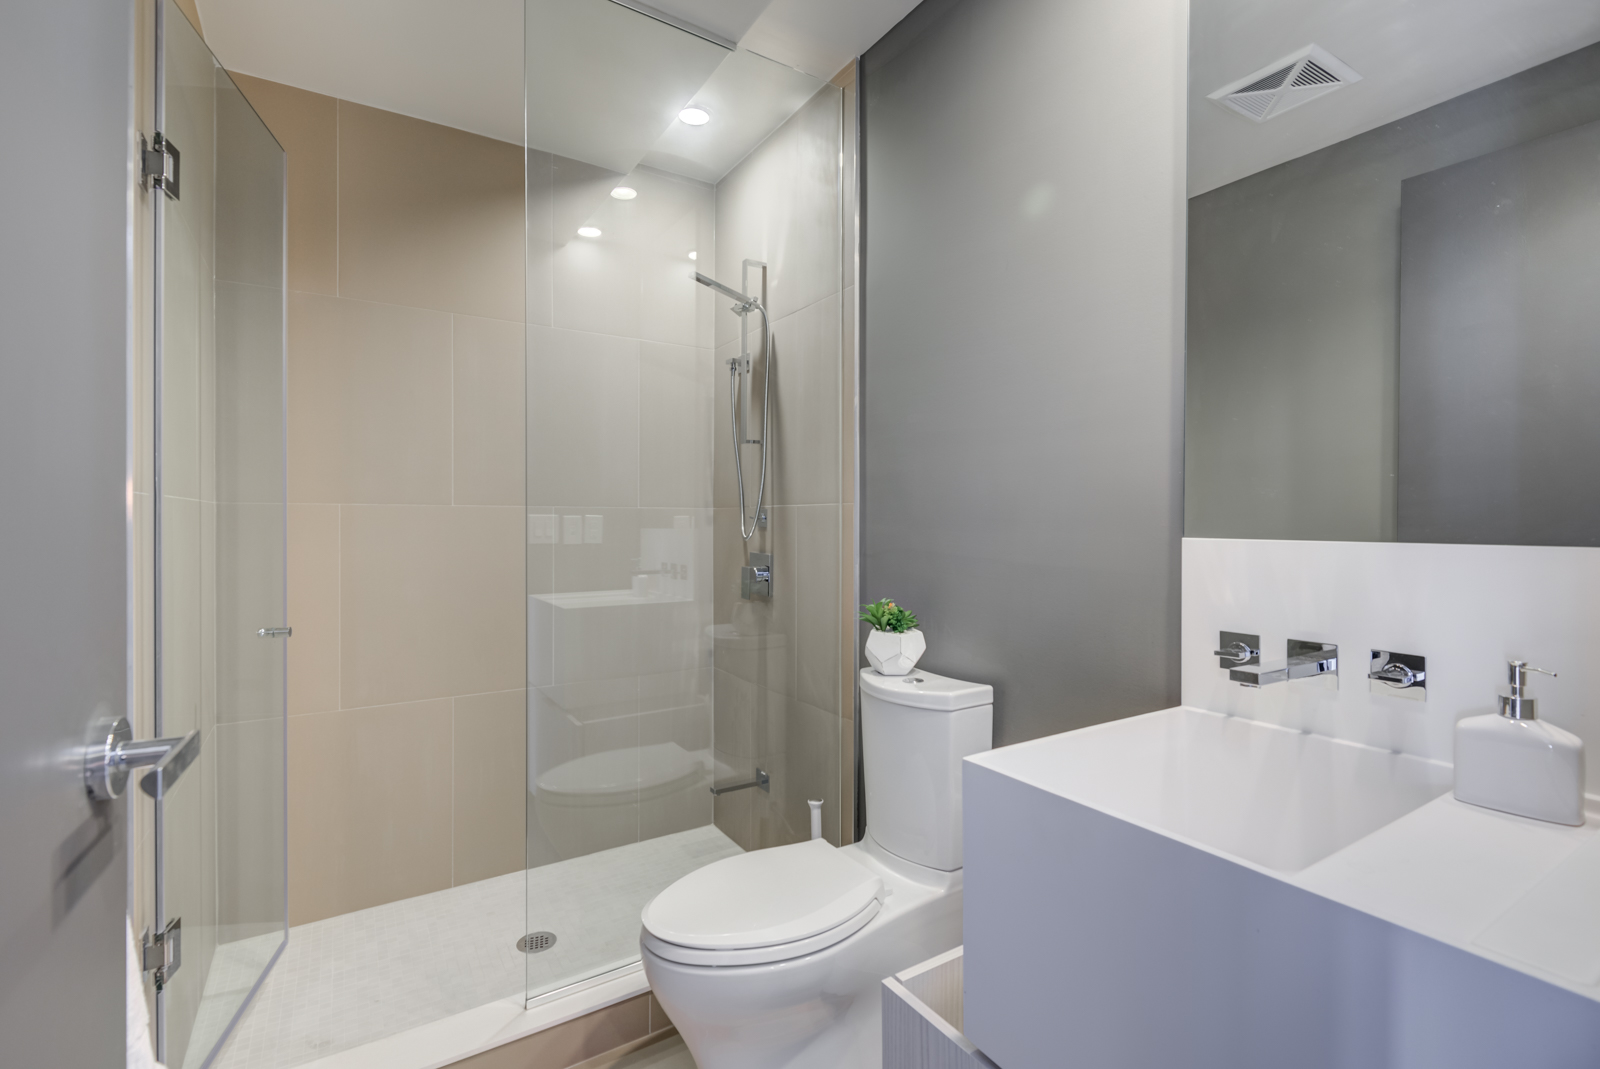 1 Bloor St E Unit 4305 bathroom with walk-in shower, large white sink, cabinets and wall-mounted faucet.